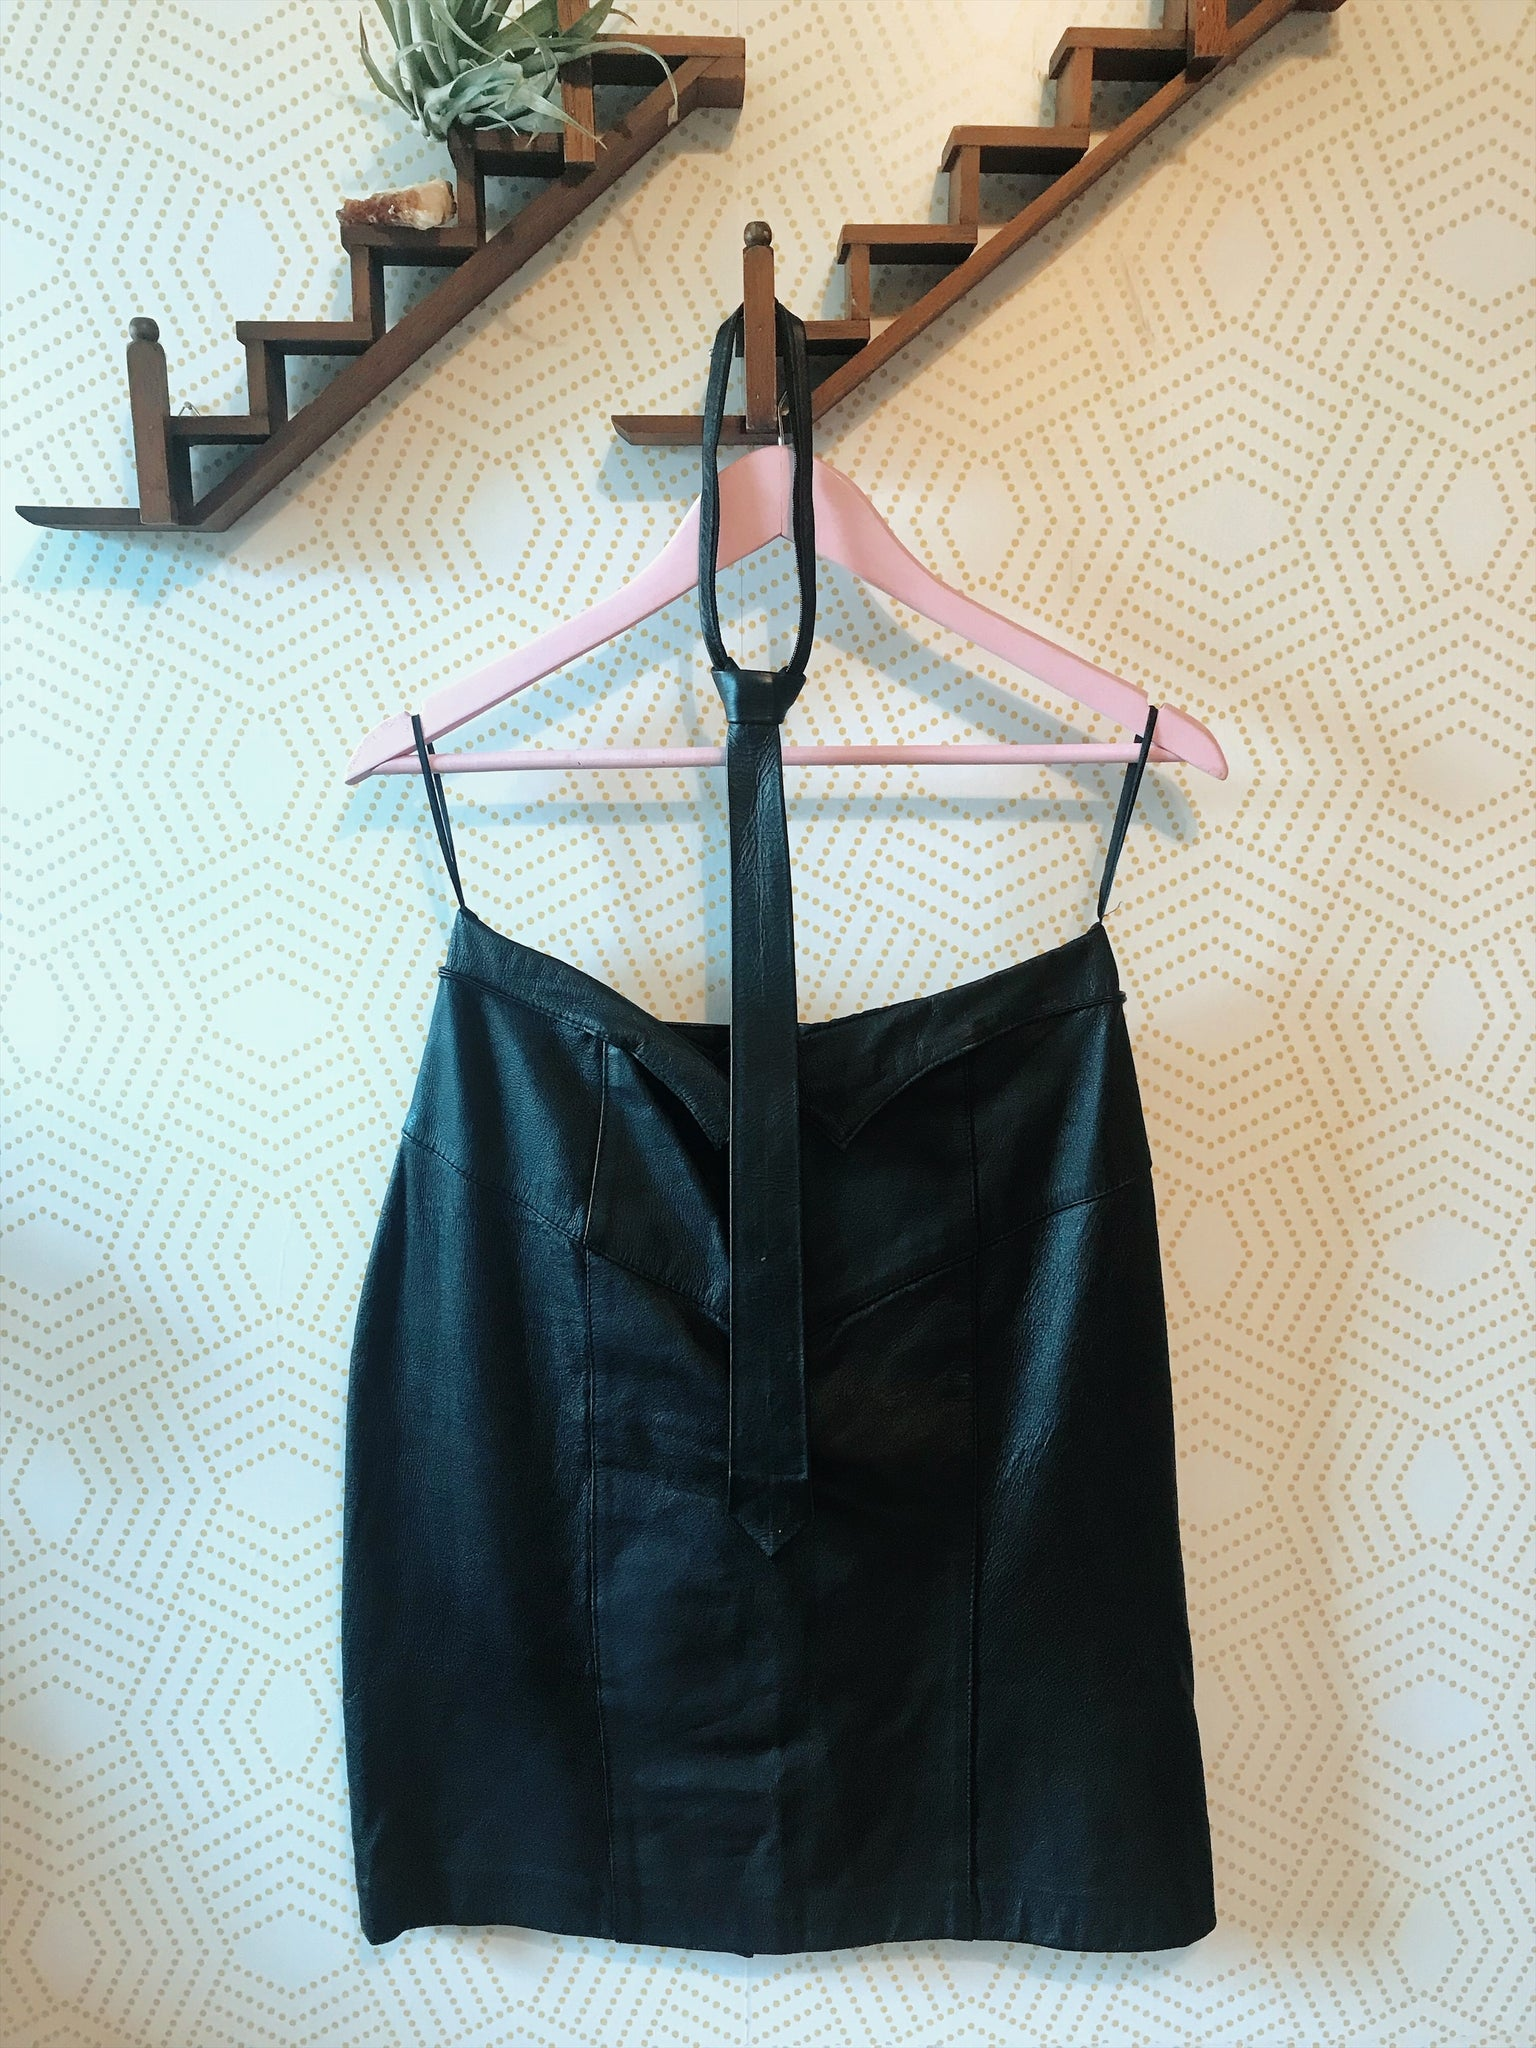 1980's Black leather pencil skirt and zip up tie